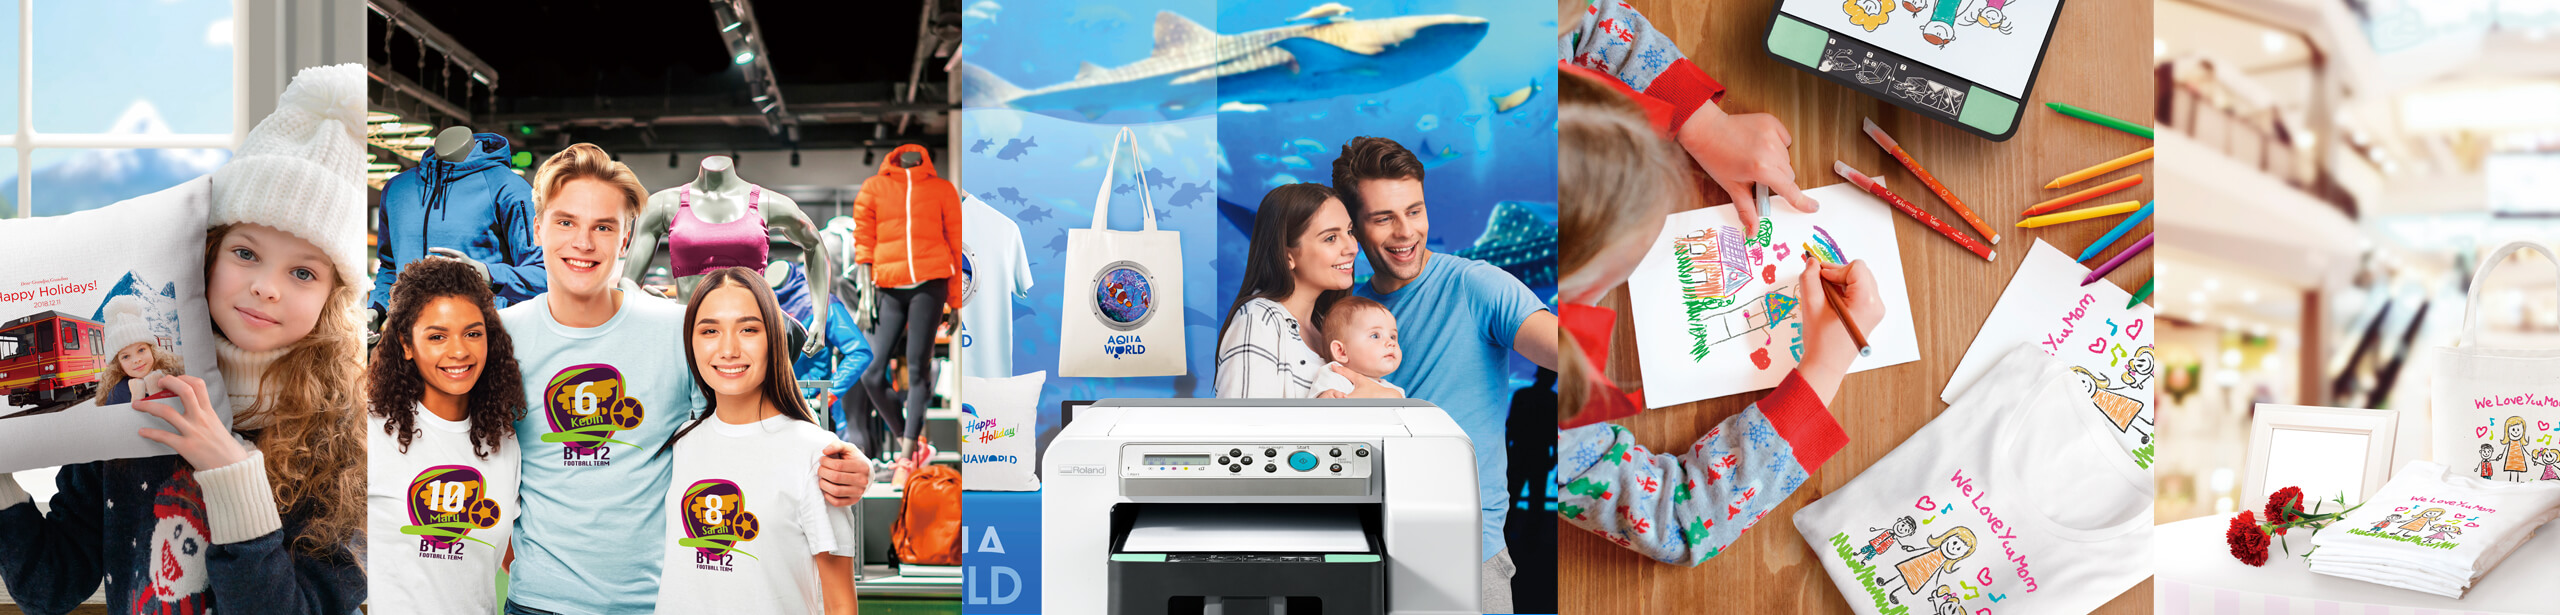 BT-12 direct-to-garment printer can be used to print any sort of idea on clothes